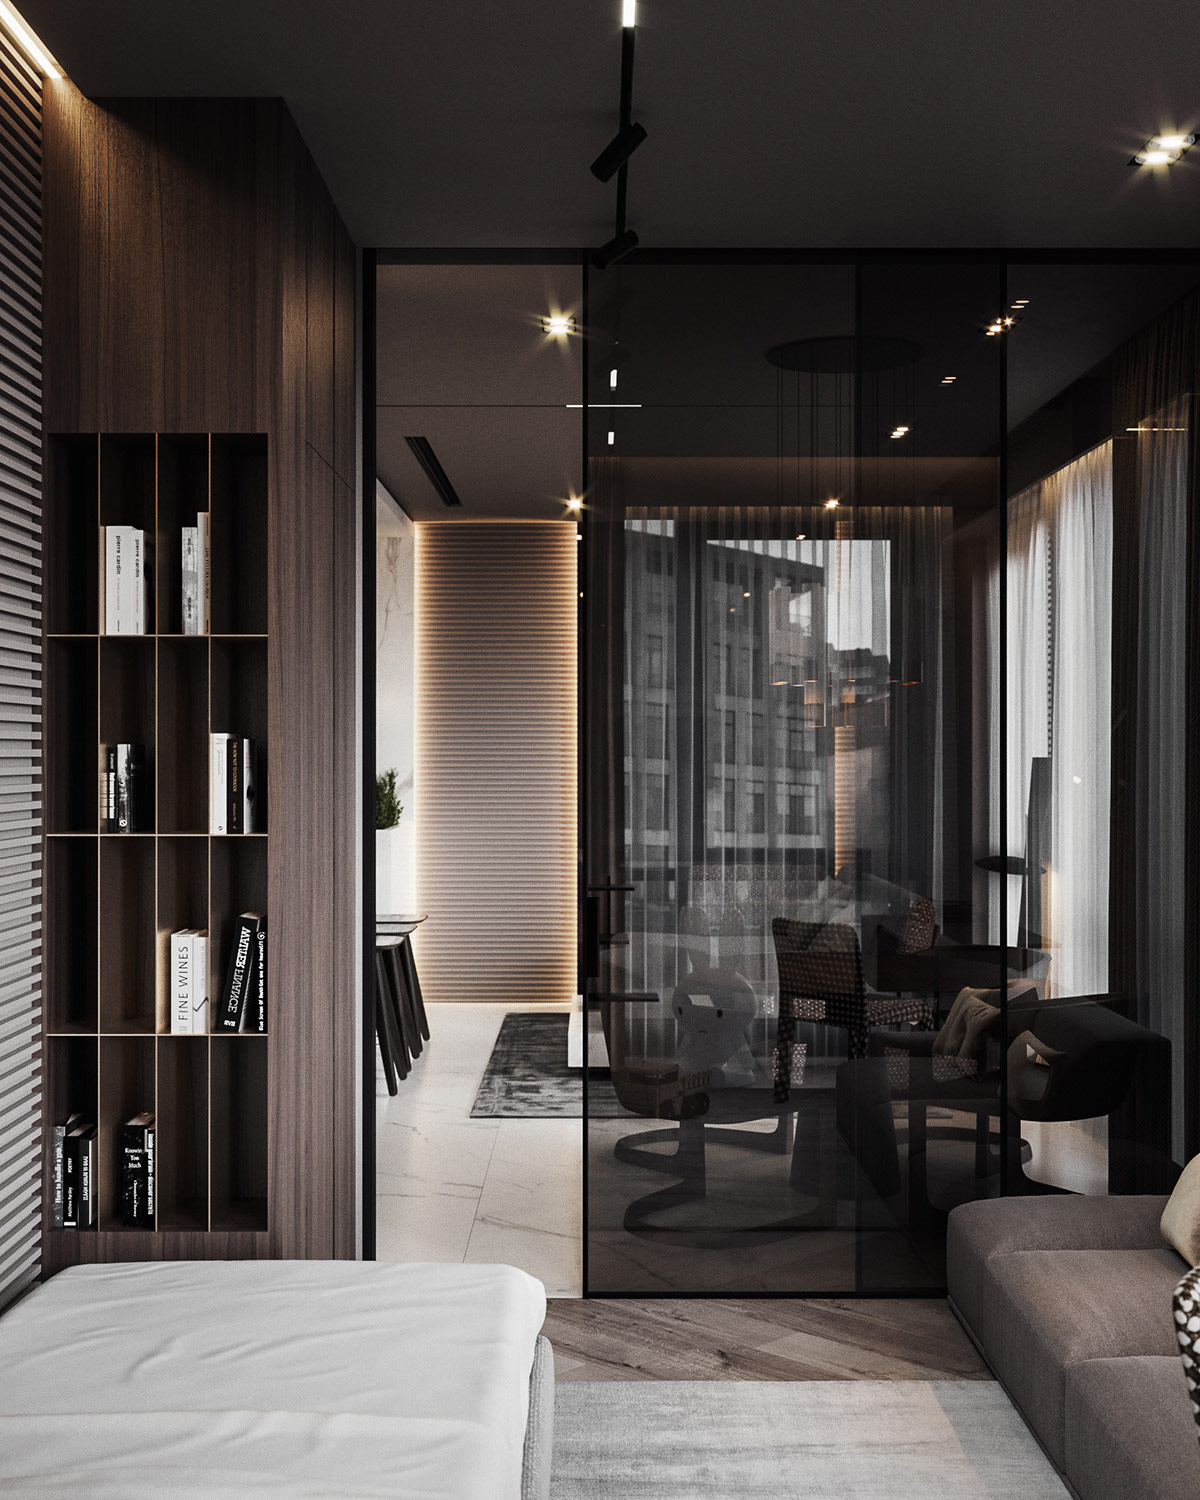 HOME DESIGNING: Small-scale Meets Upscale In Two Compact